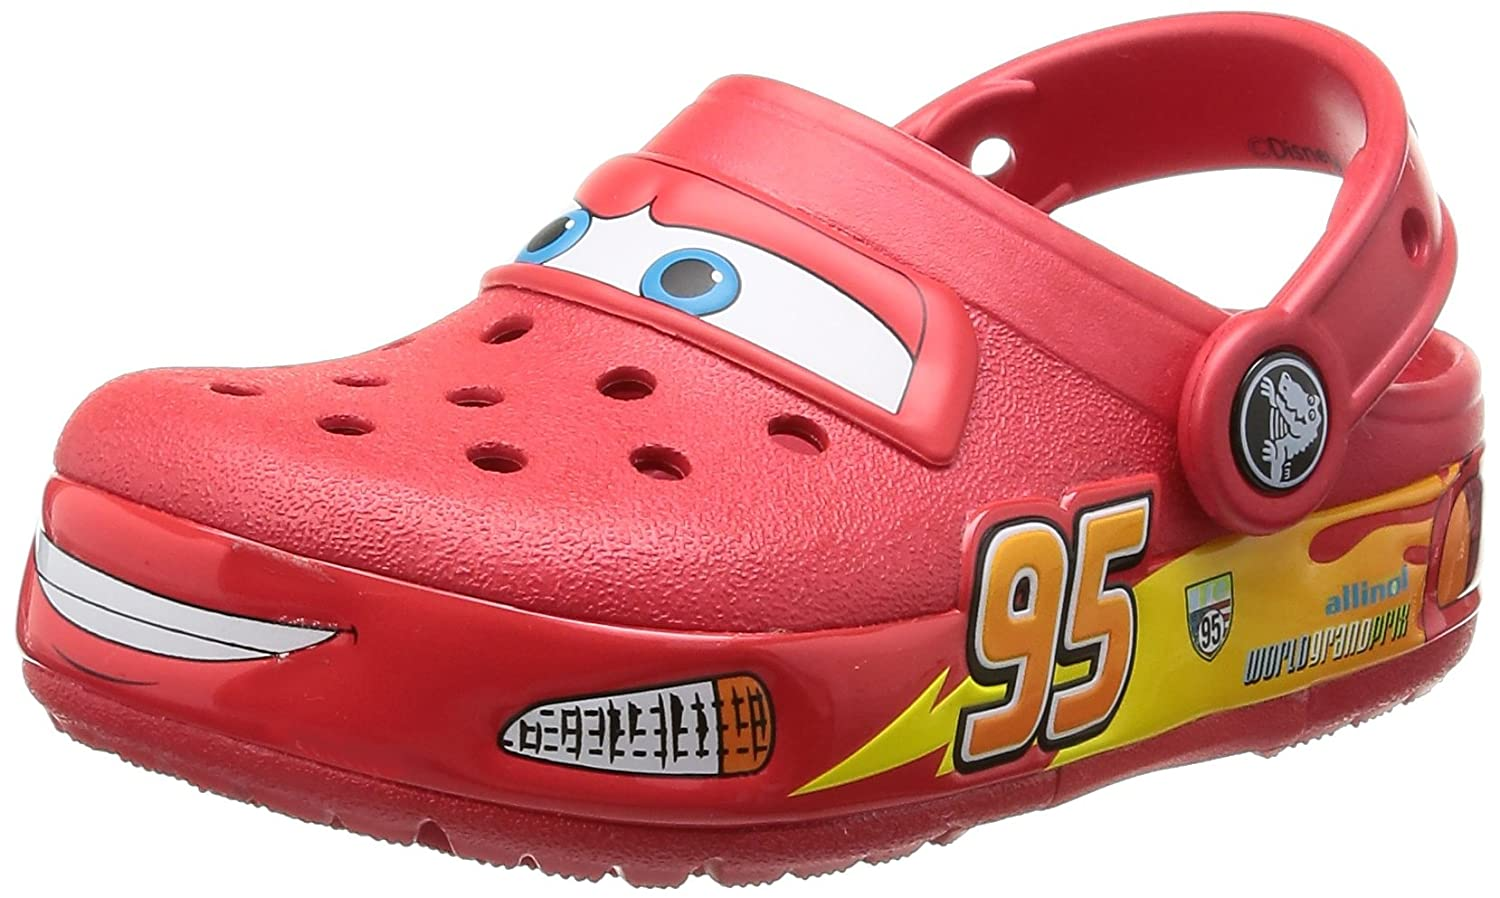 Crocs Boy's Lights Cars Rubber Clogs and Mules: Buy Online at Low Prices in  India - Amazon.in